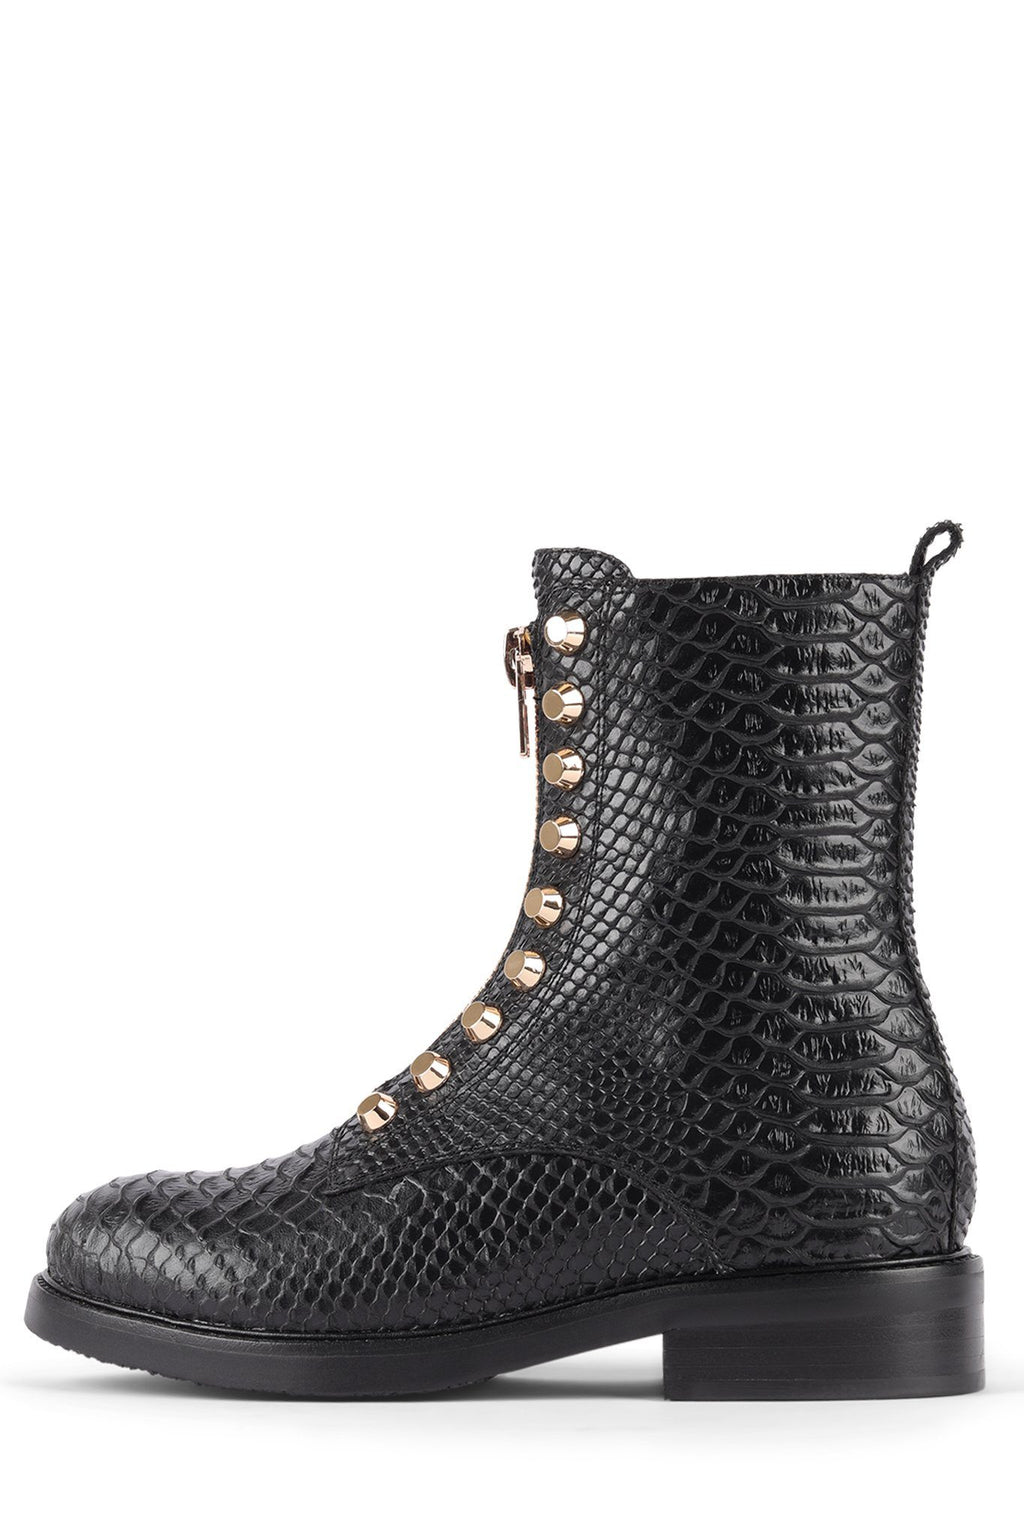 TONETTE Heeled Bootie YYH Black Snake 6